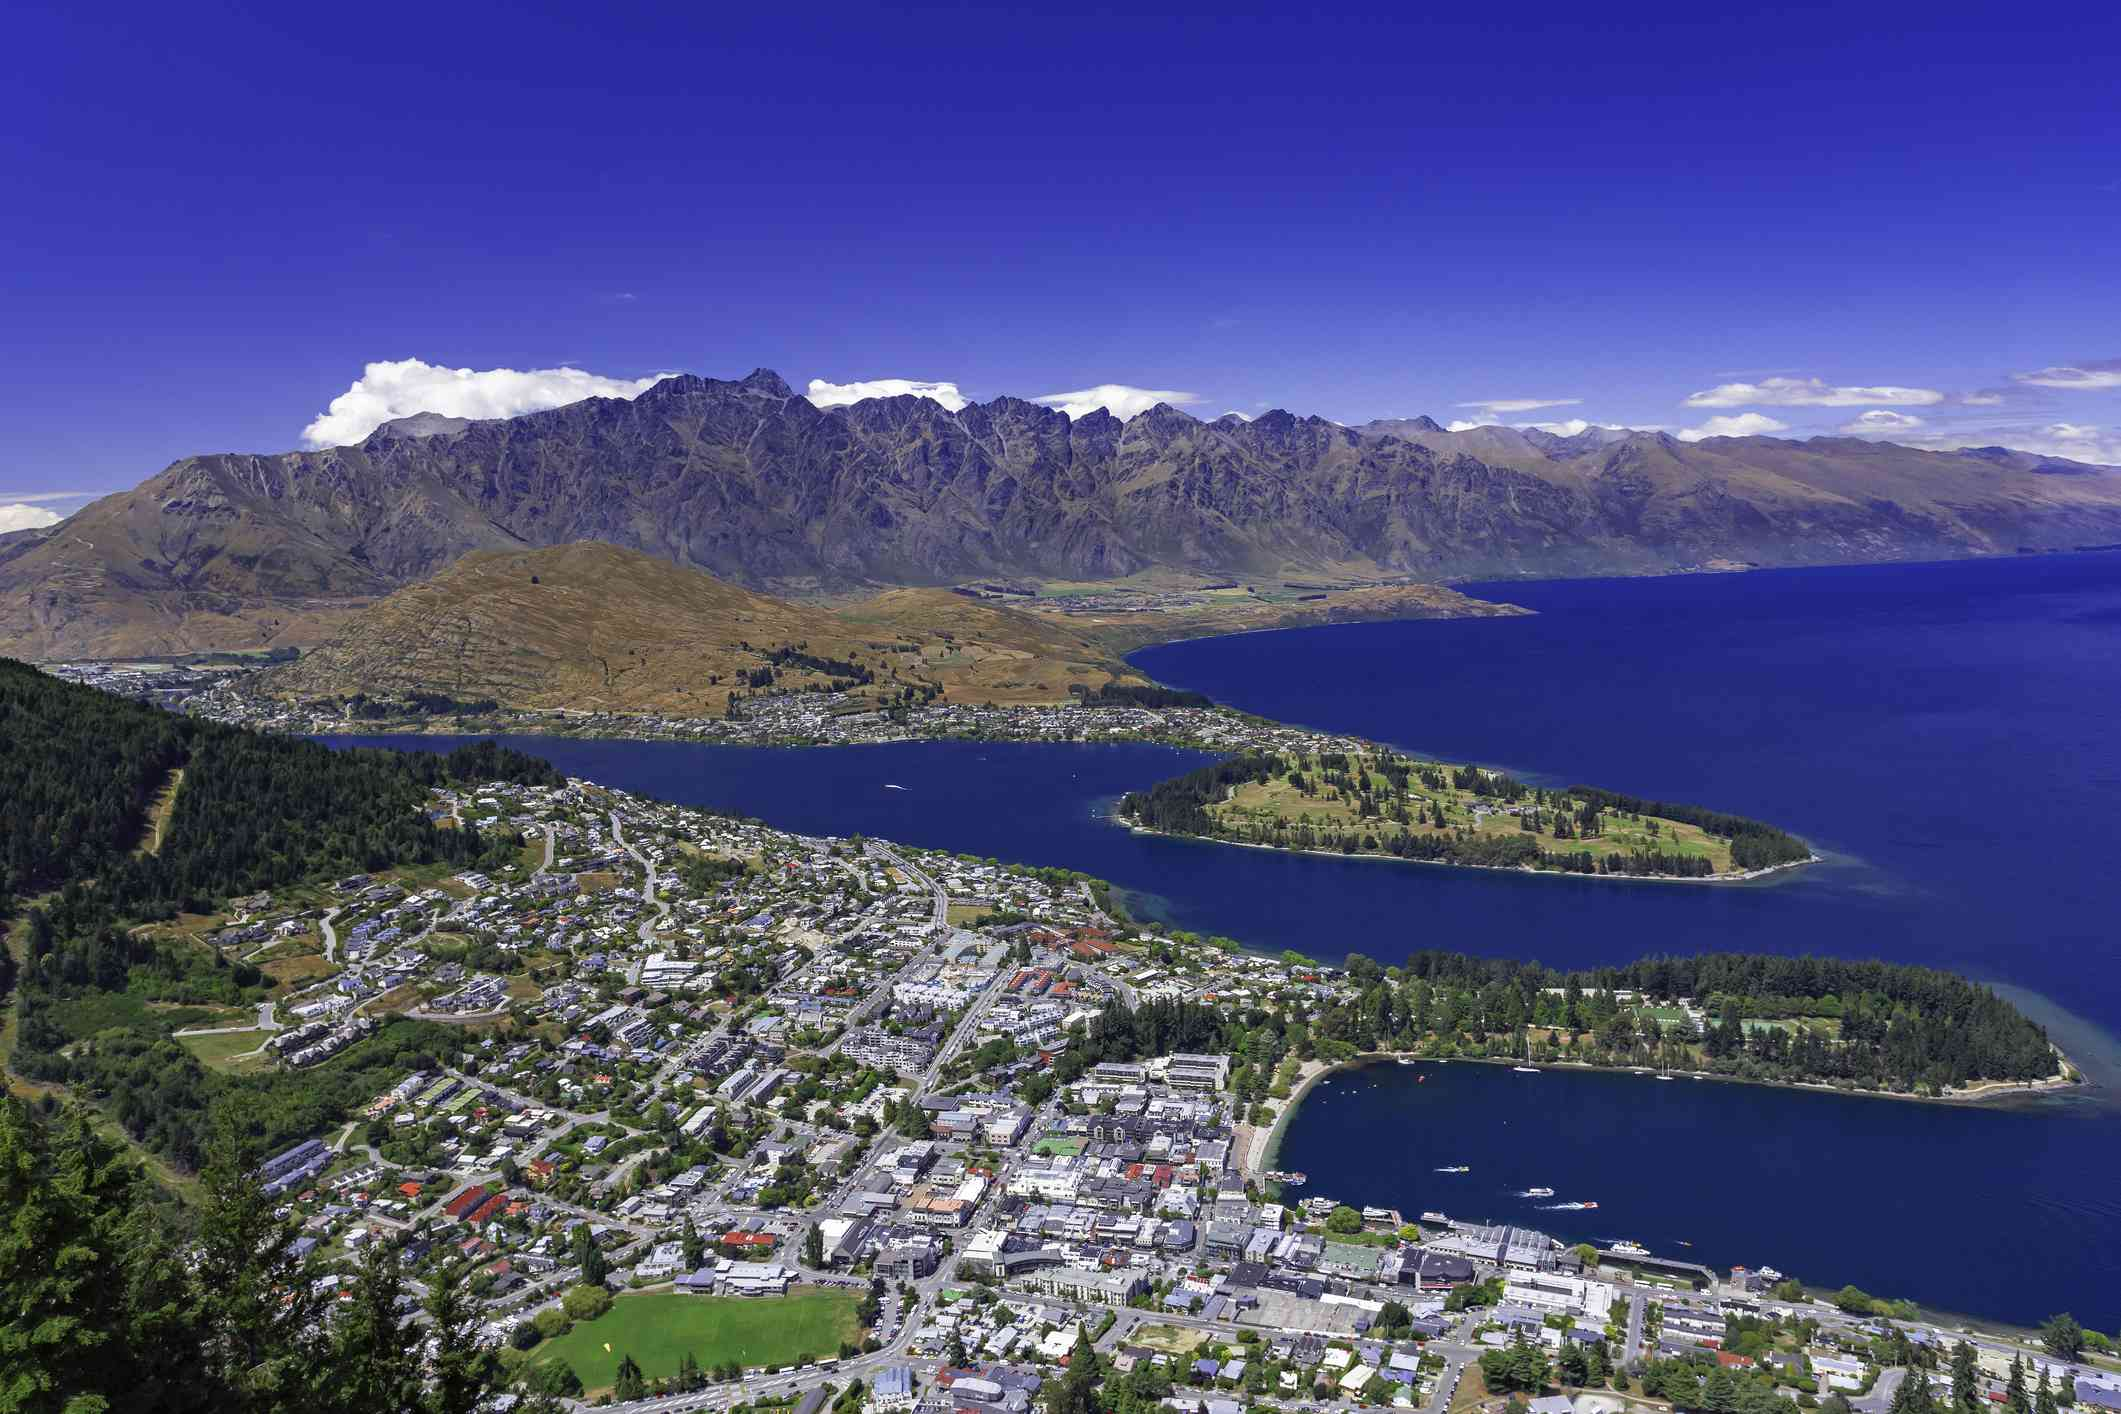 Aerial view of Queenstown from Bob's Peak with the city in the foreground next to the vivid blue water with mountain peaks in the distance below a bright blue sky